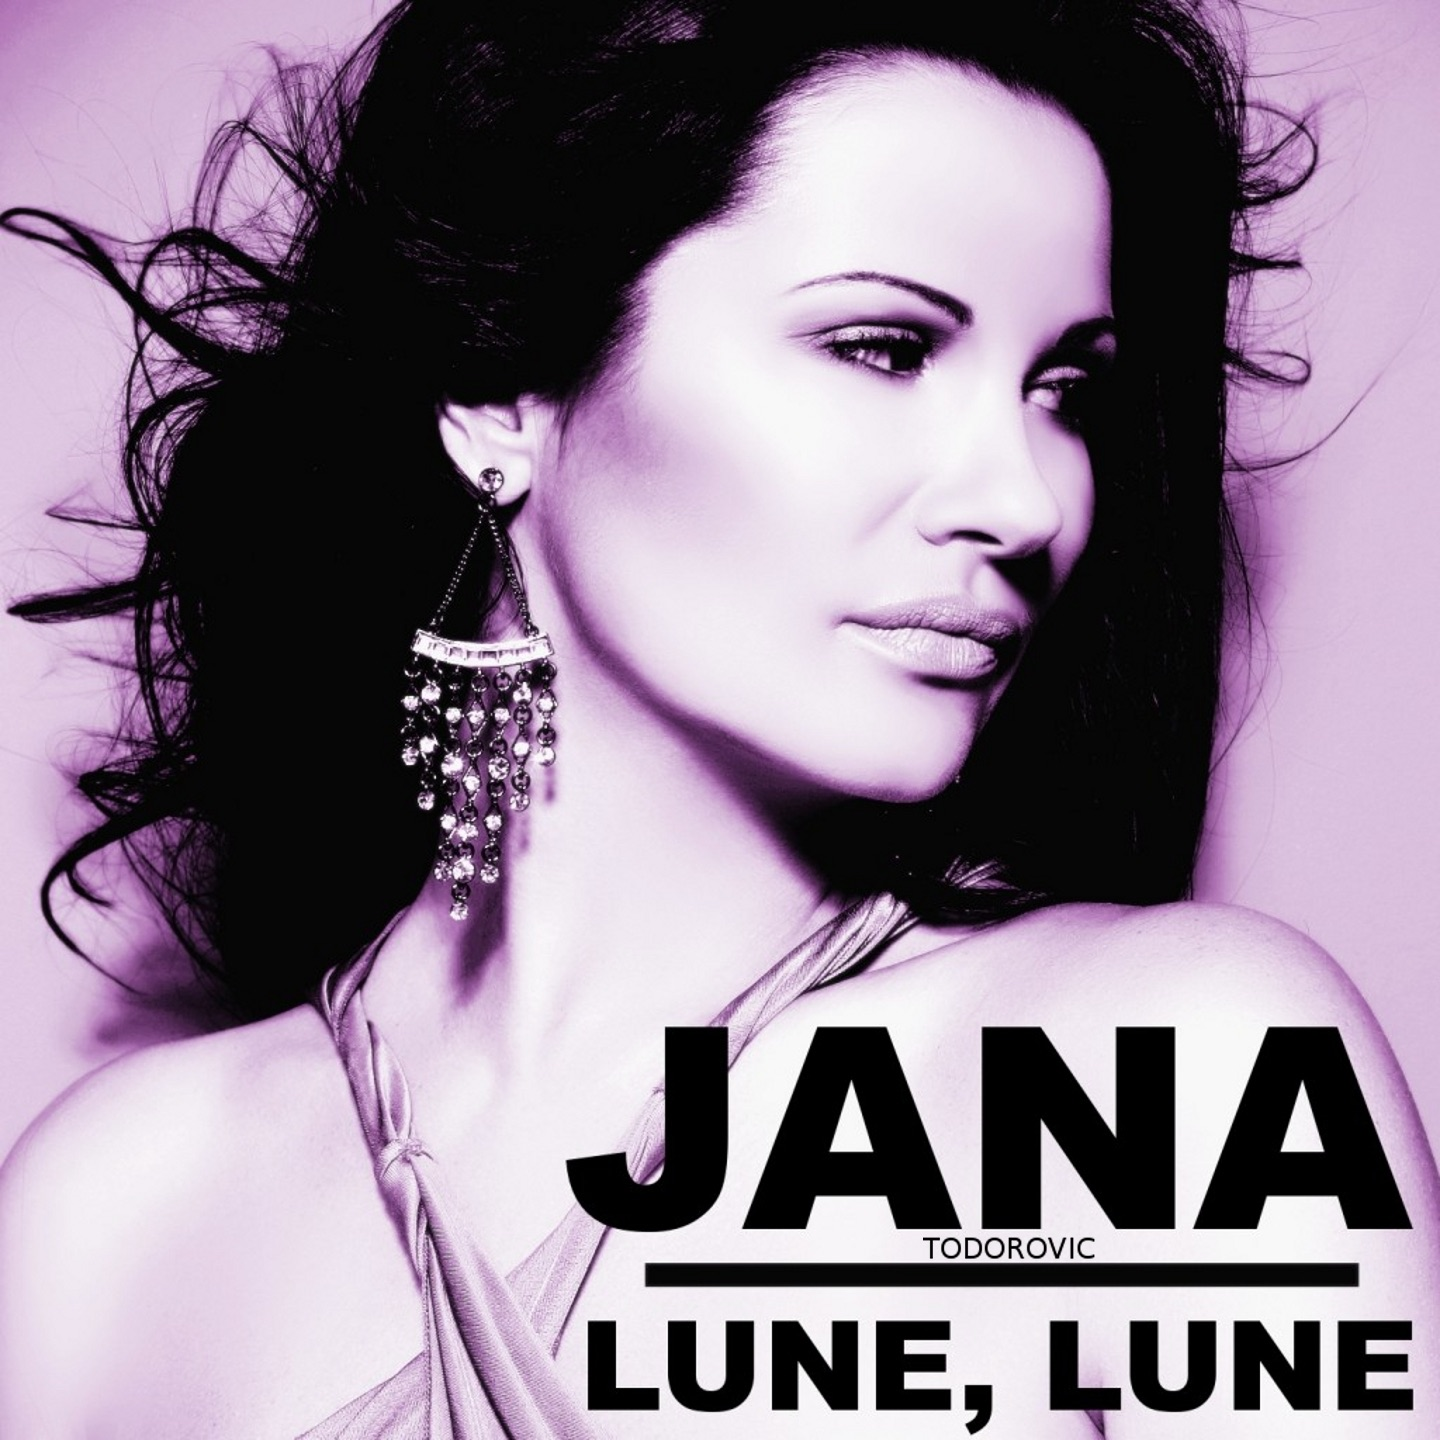 """Lune, lune - Single"" von Jana Todorovic in iTunes - 1440x1440sr"